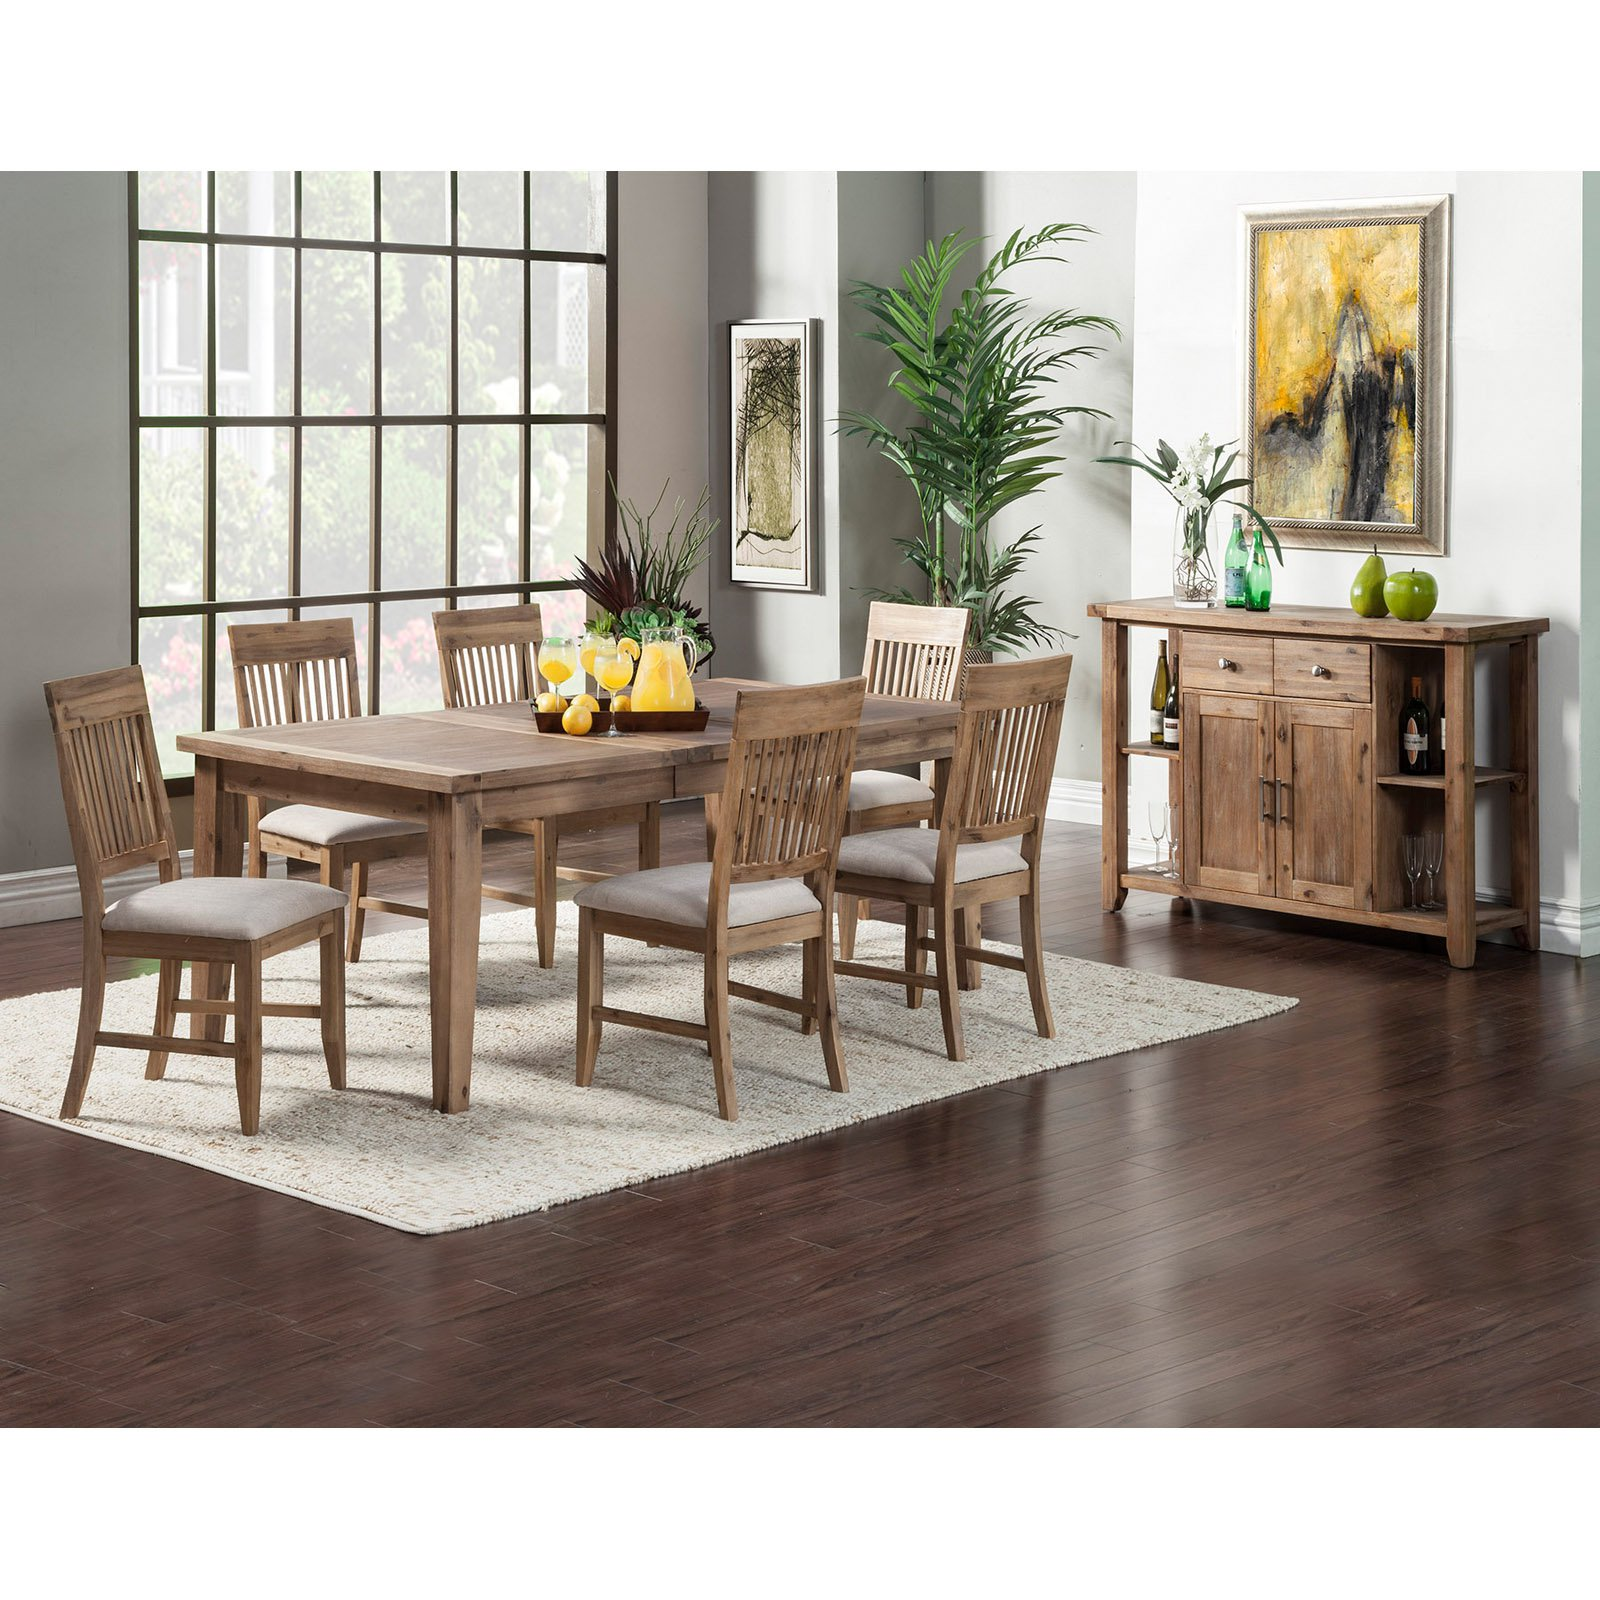 Kitchen Server Furniture Alpine Furniture Aspen 7 Piece Dining Set With Optional Server